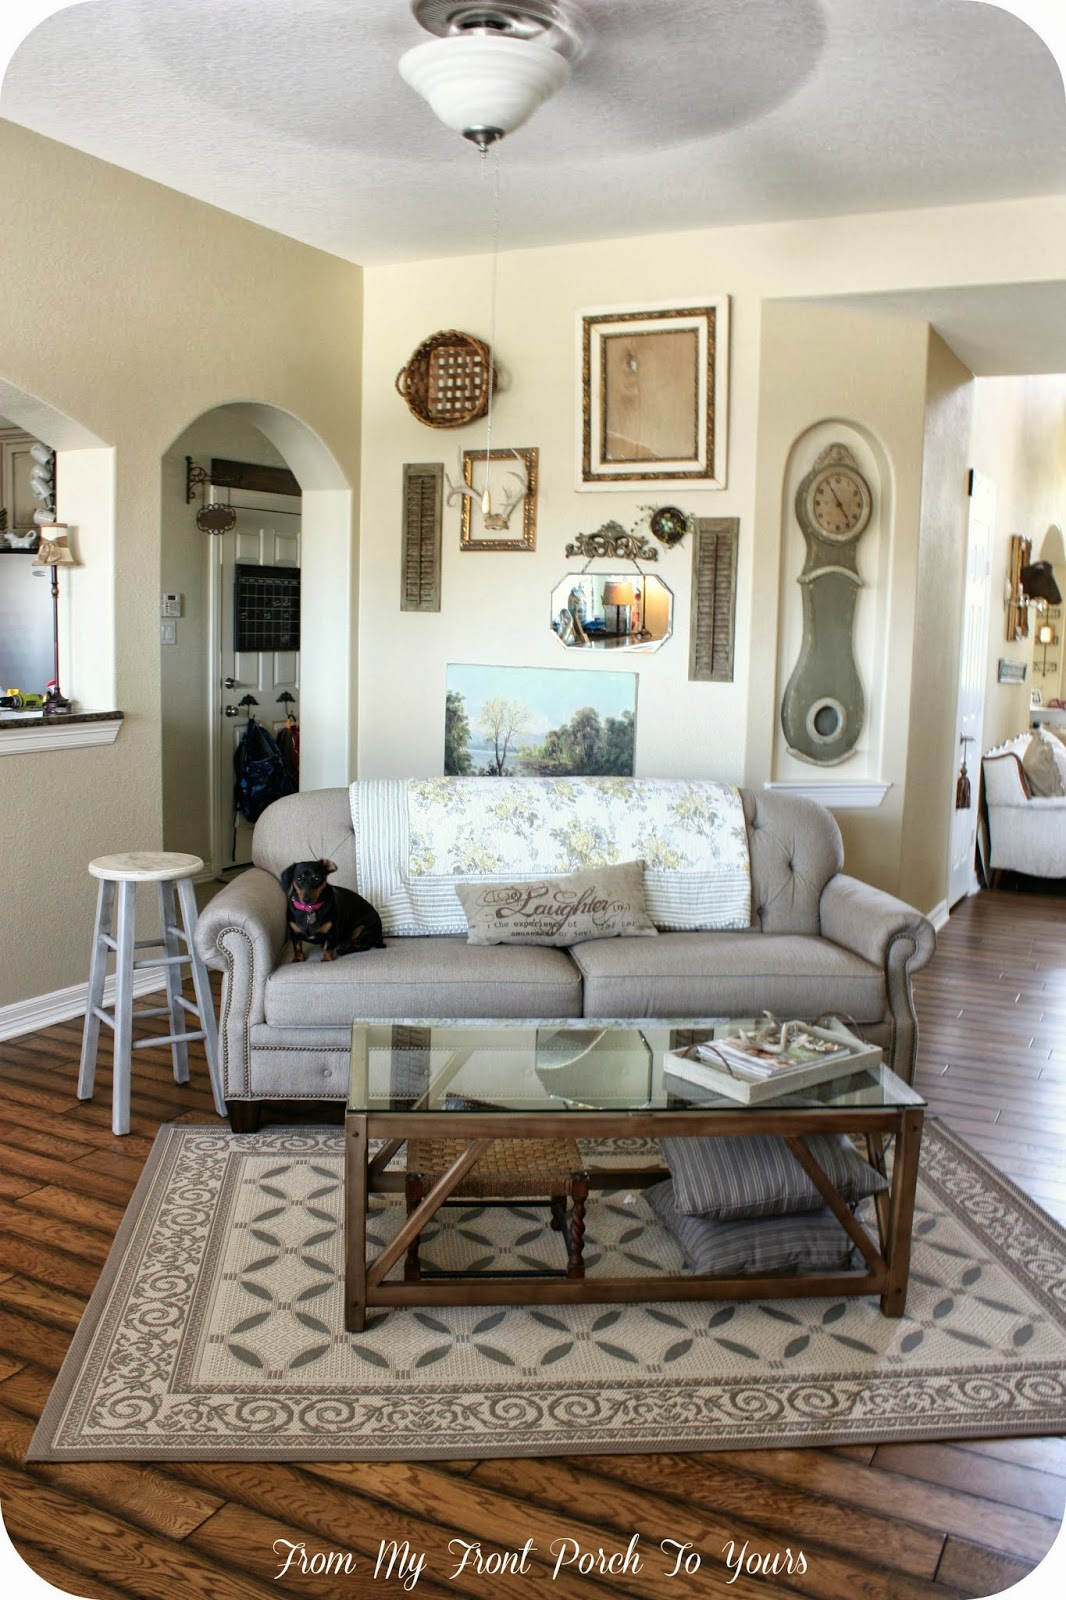 Farmhouse Living Room Decor Ideas: From My Front Porch To Yours: French Farmhouse Living Room